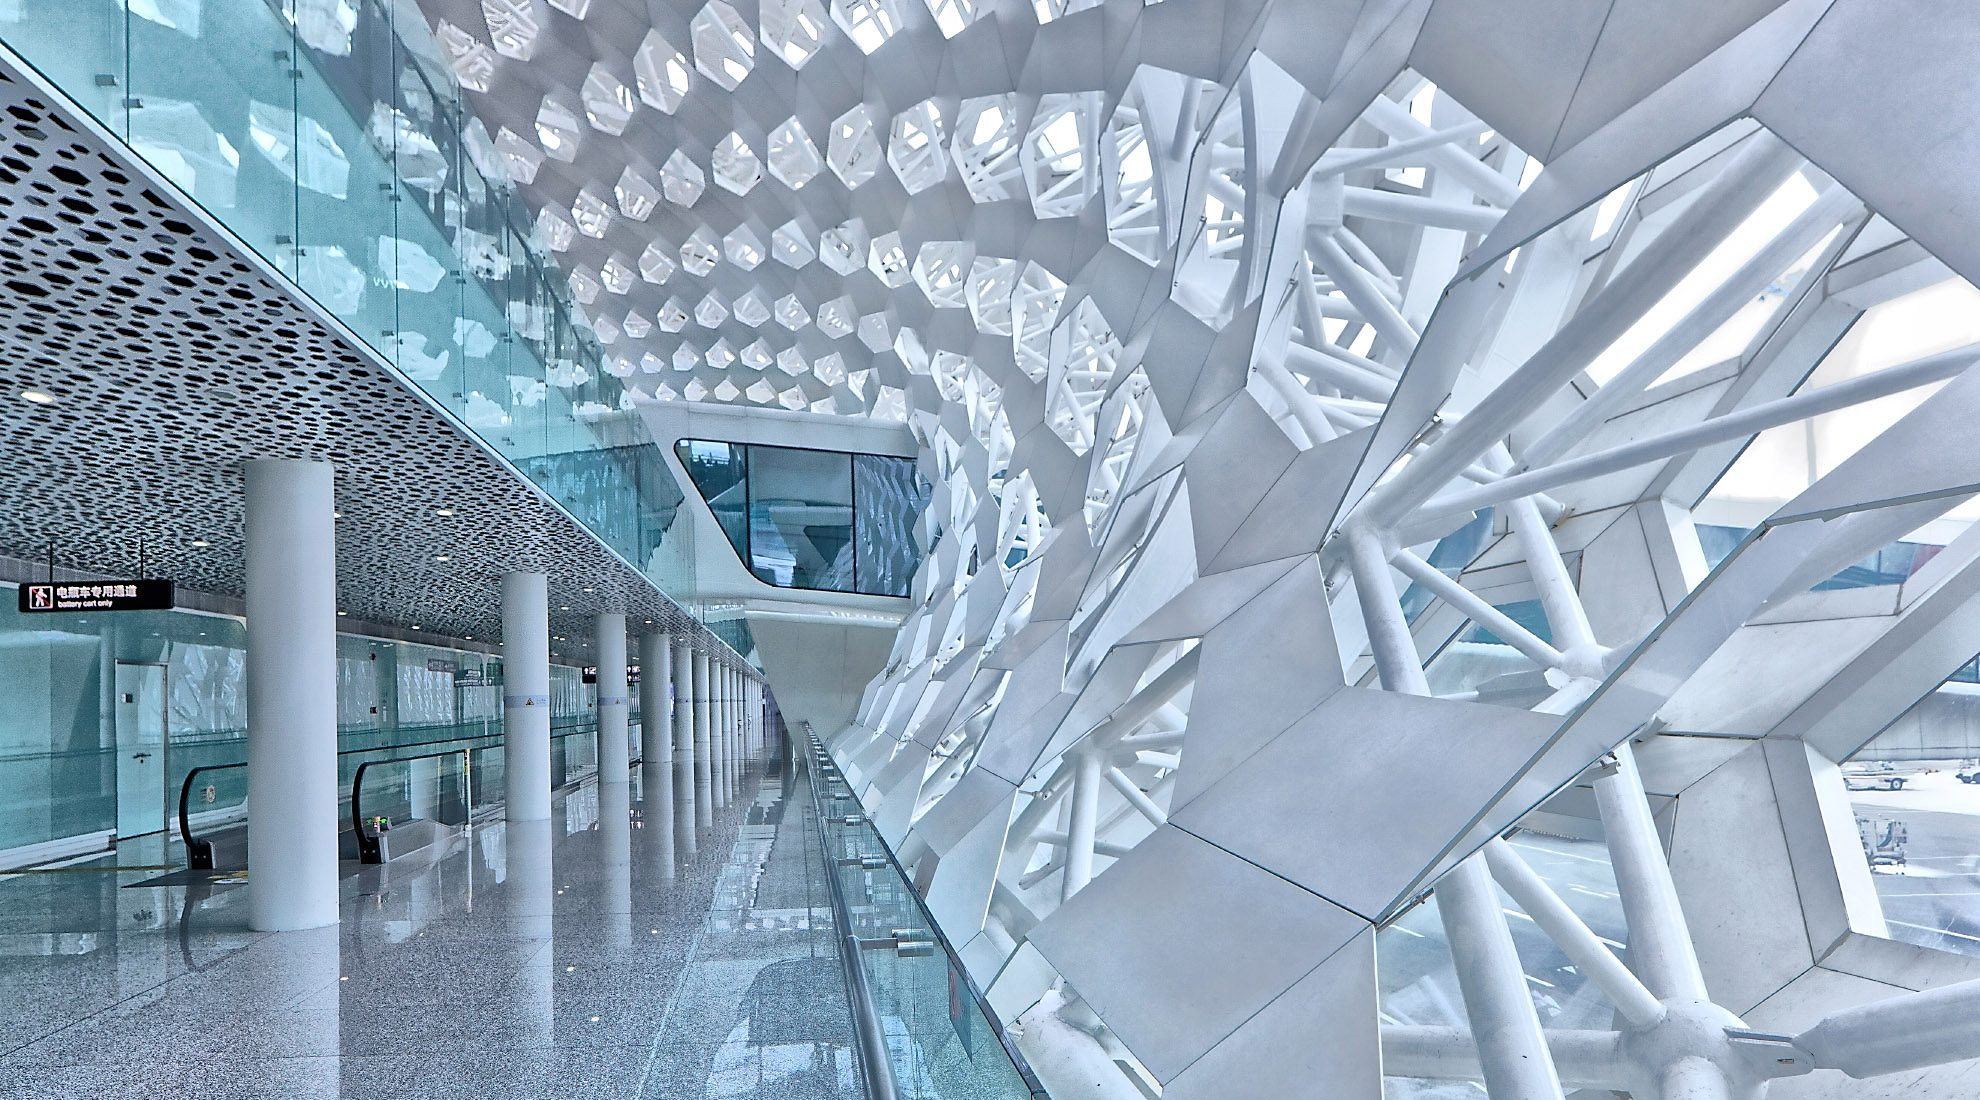 Paul Dingman has a proven track record photographing airports and transportation for architects.